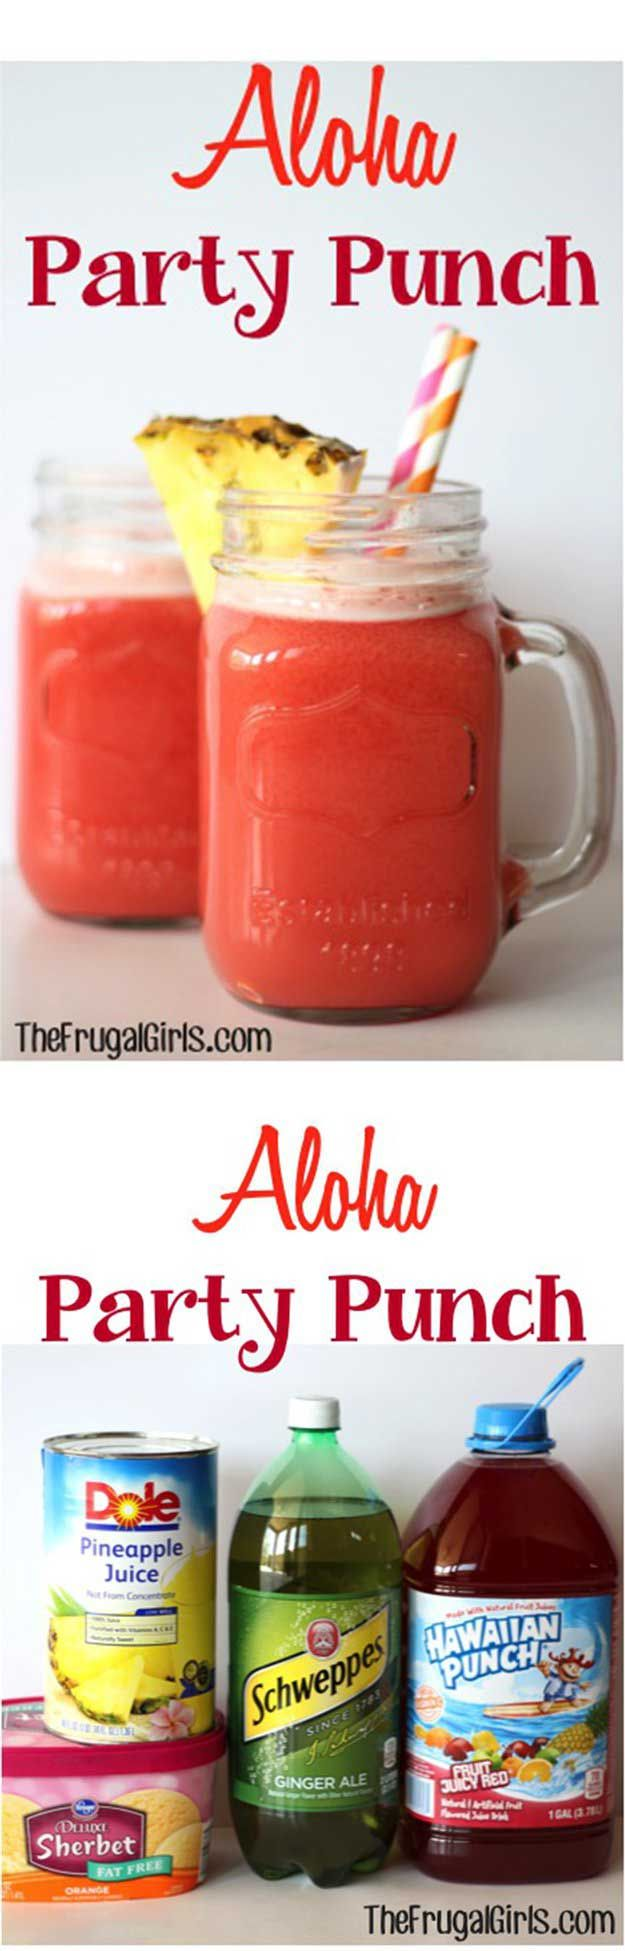 Aloha Party Punch | Amazing DIY Beach Party Ideas